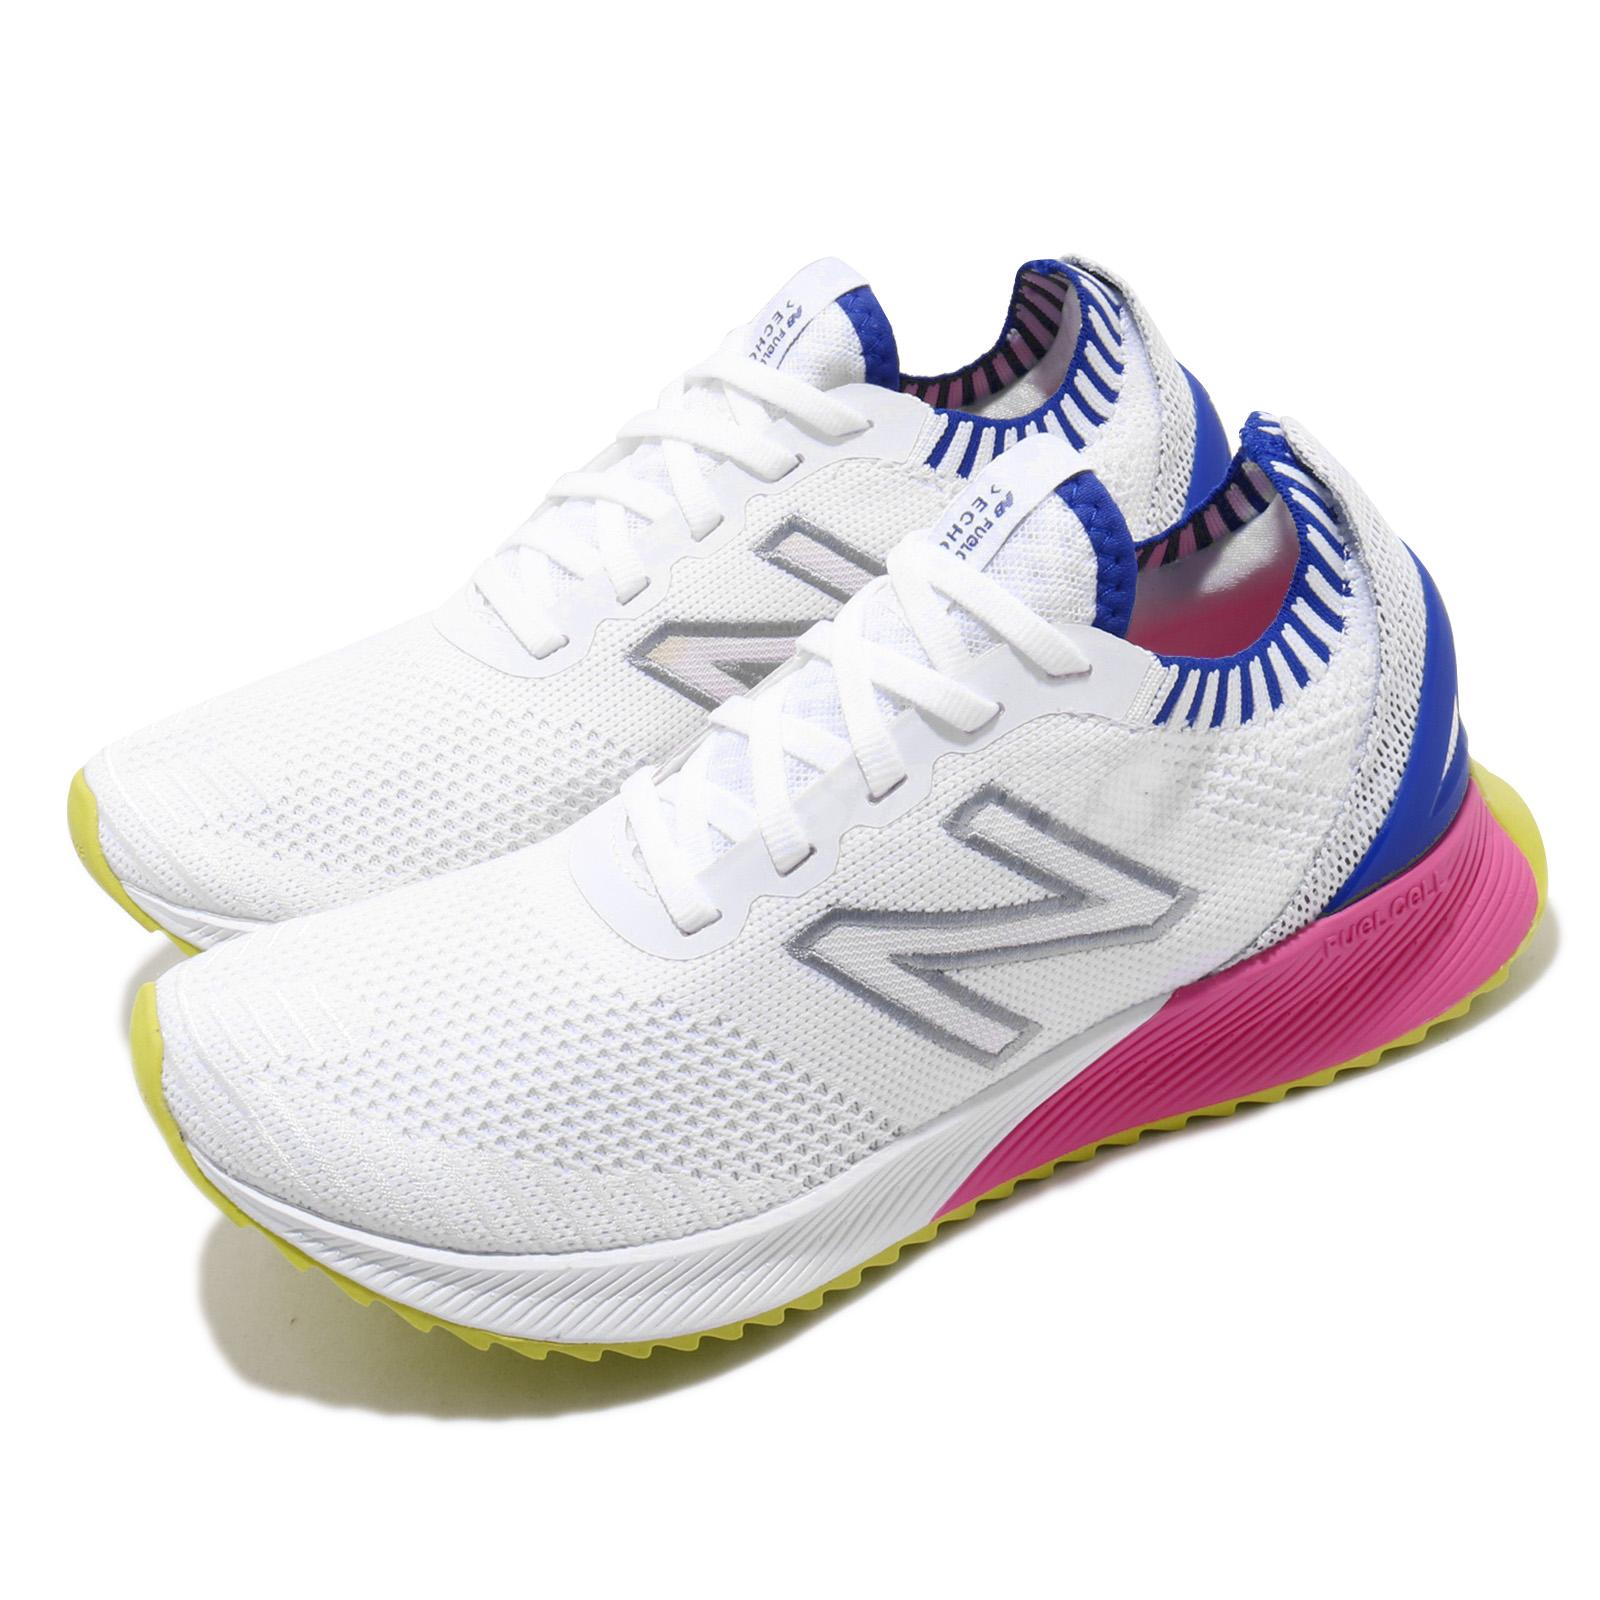 New Balance FuelCell Echo White Blue